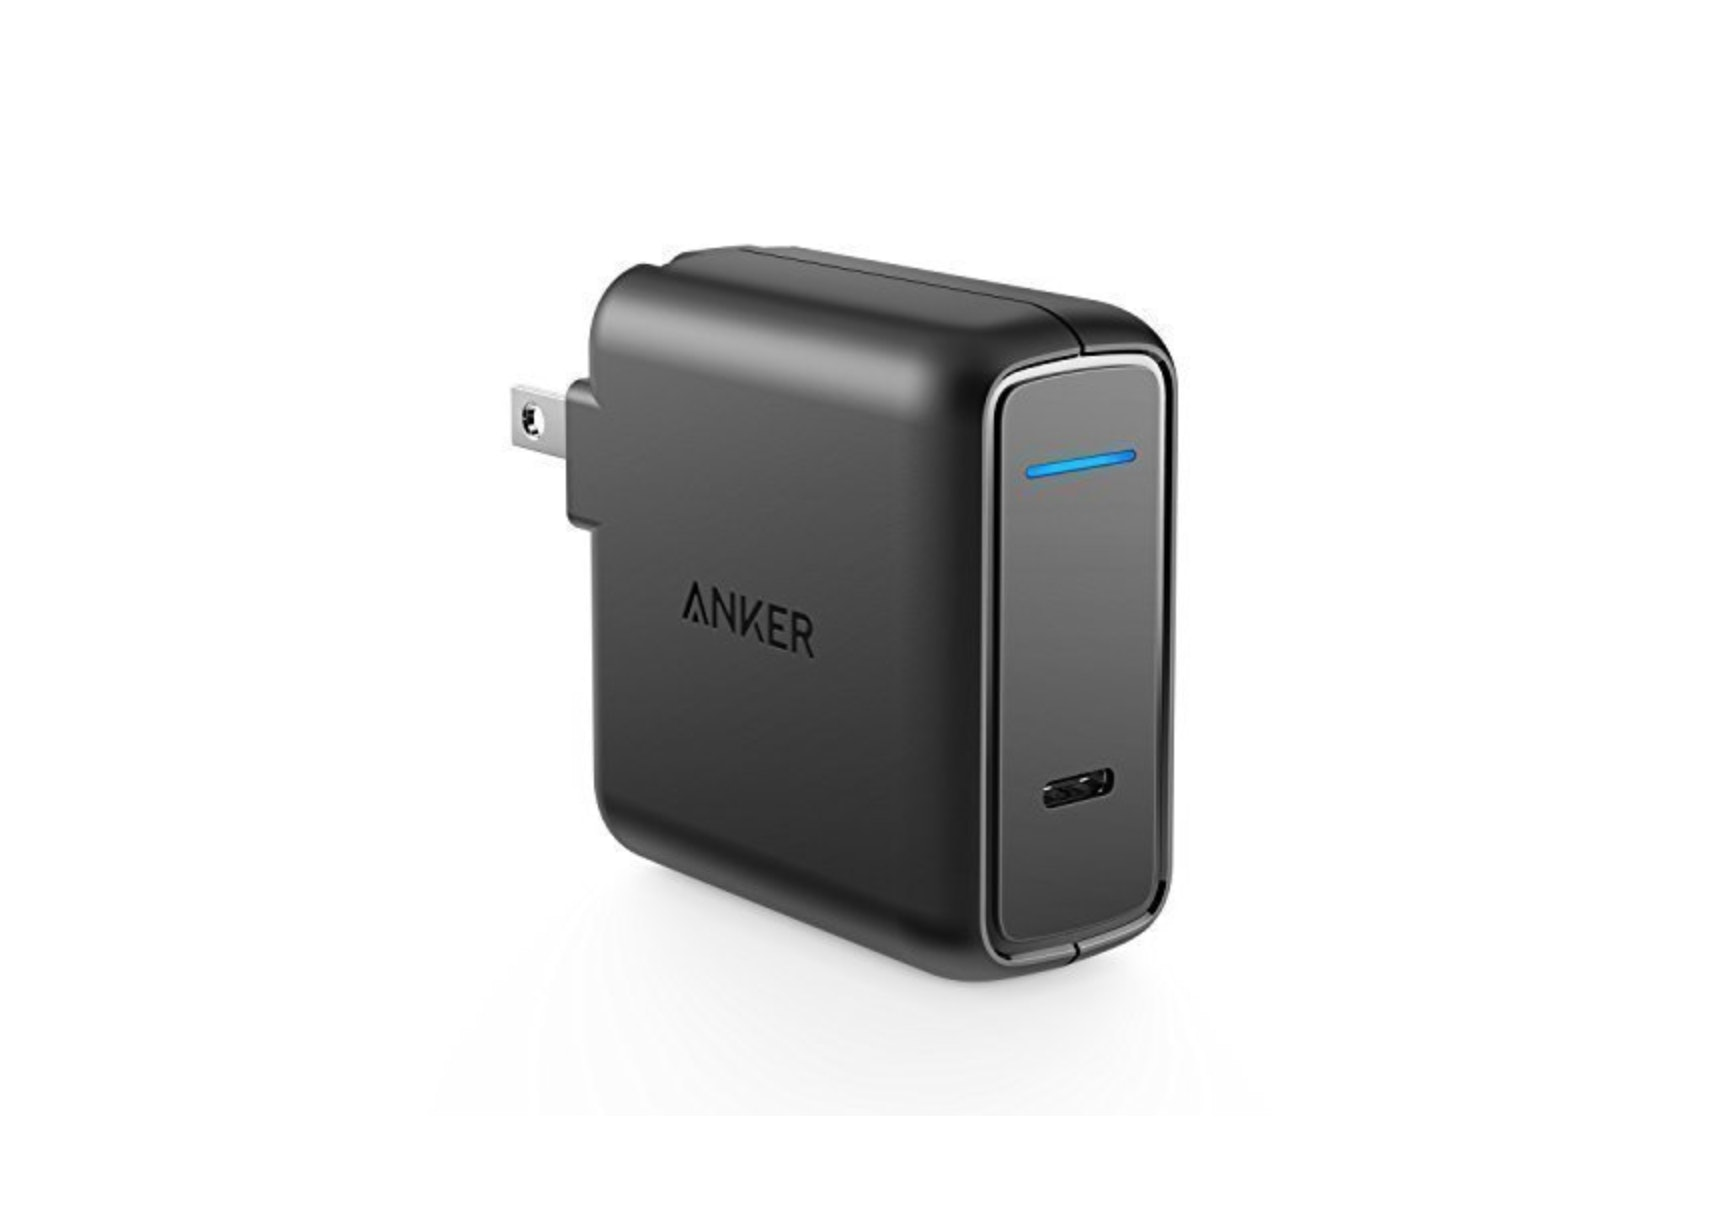 anker quick charger